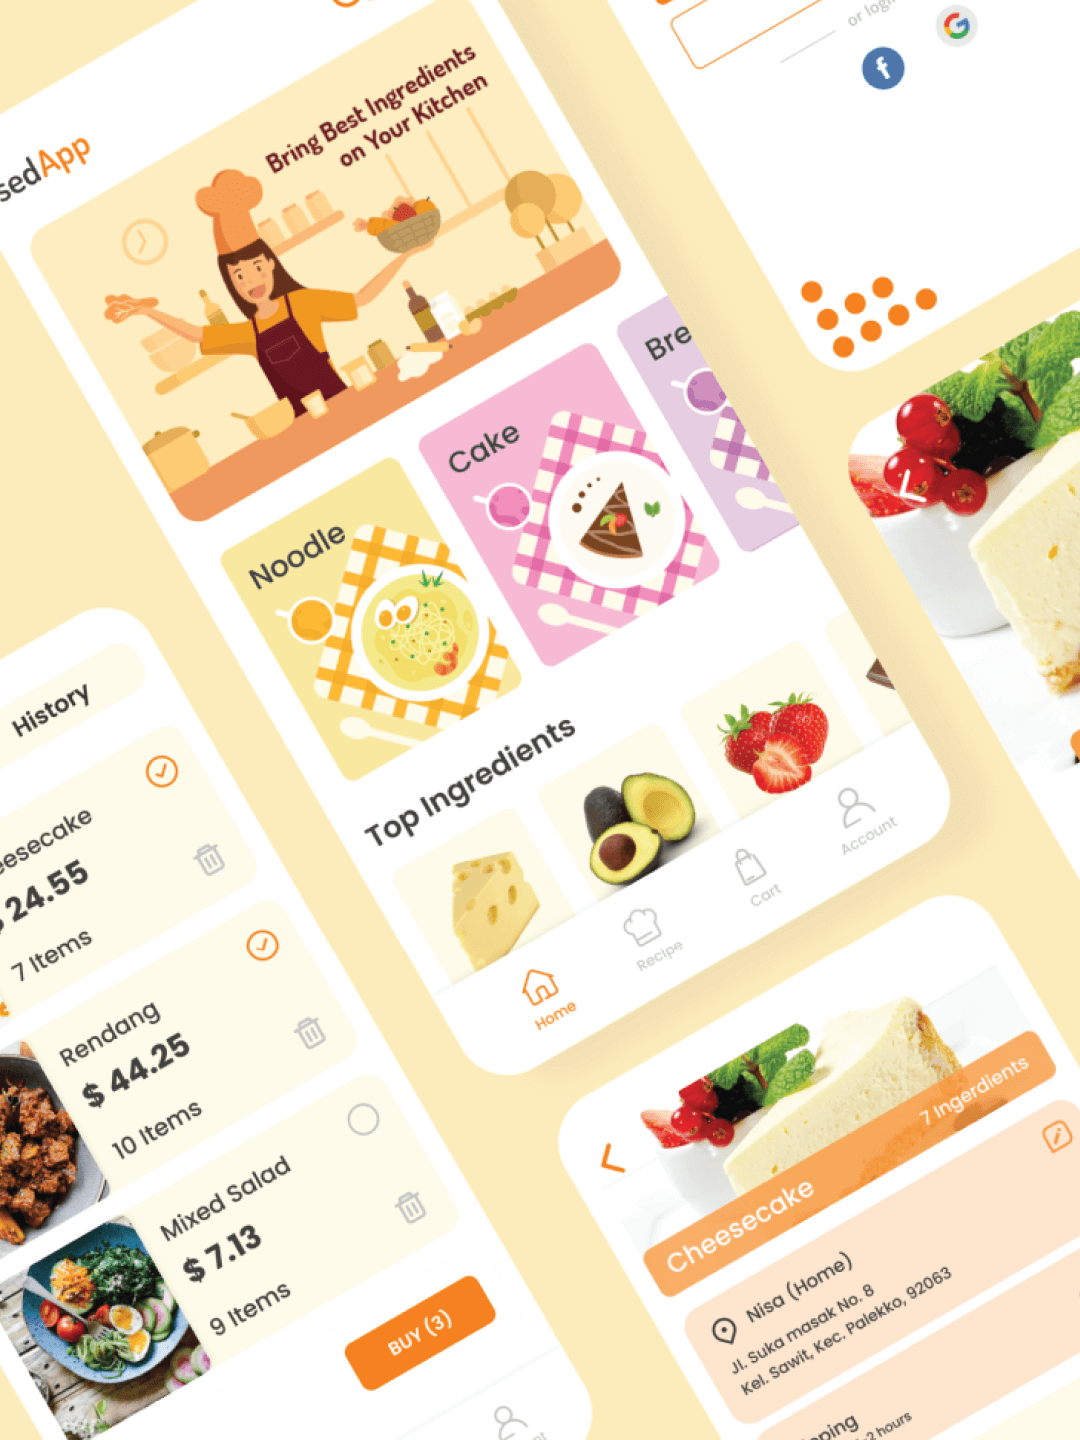 Food Recipes Mobile App